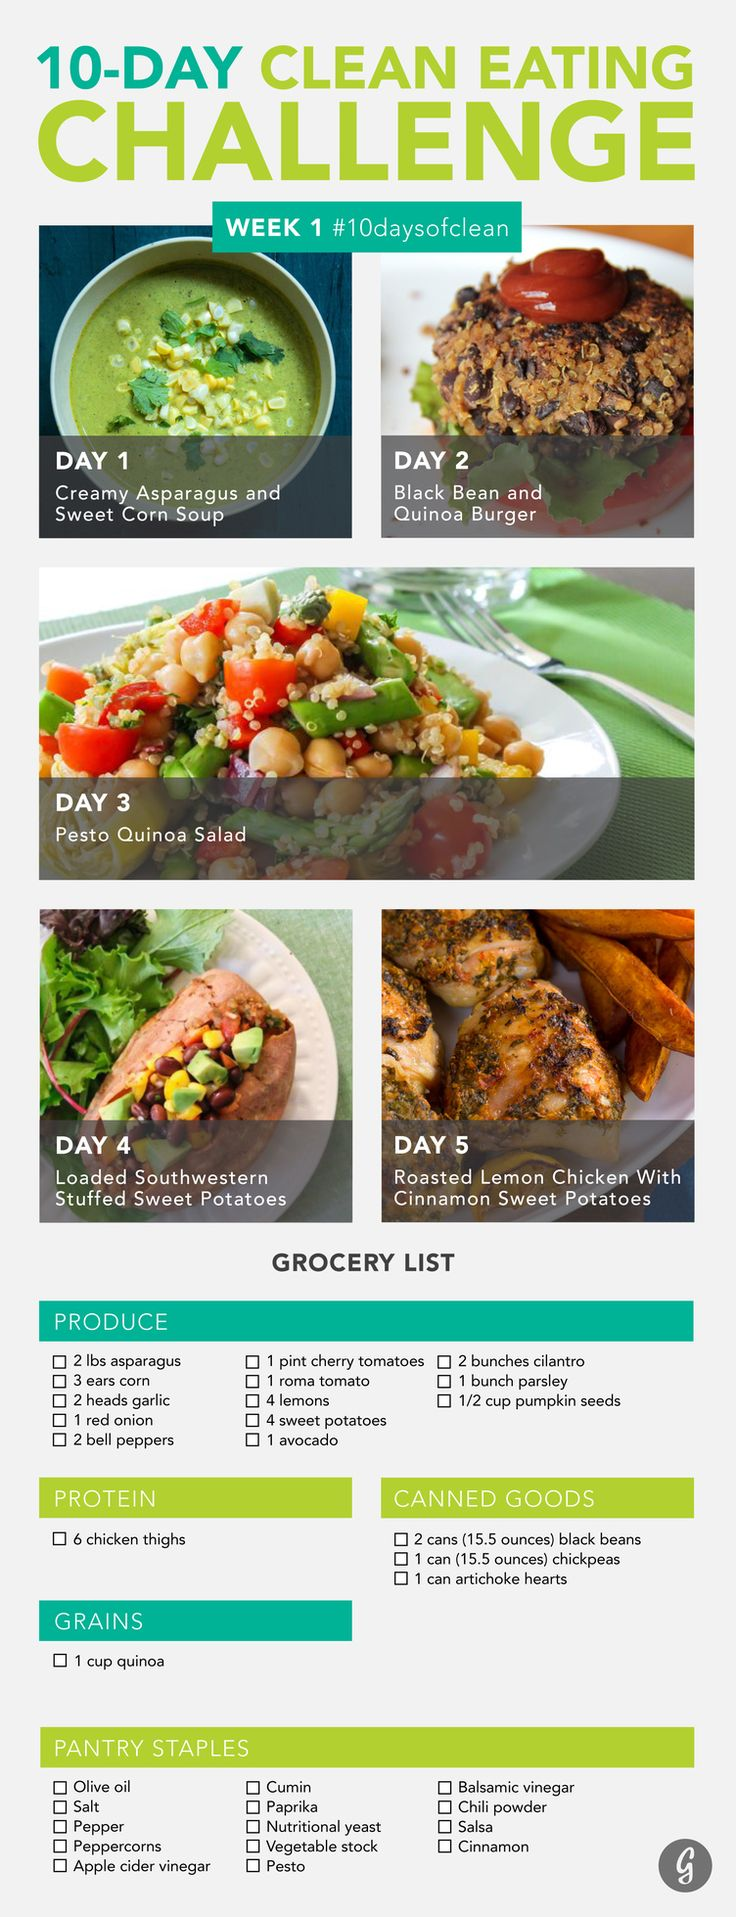 Clean Eating Challenge Week 1 #10daysofclean #healthy #recipes http://greatist.com/discover/clean-eating-challenge-week-one